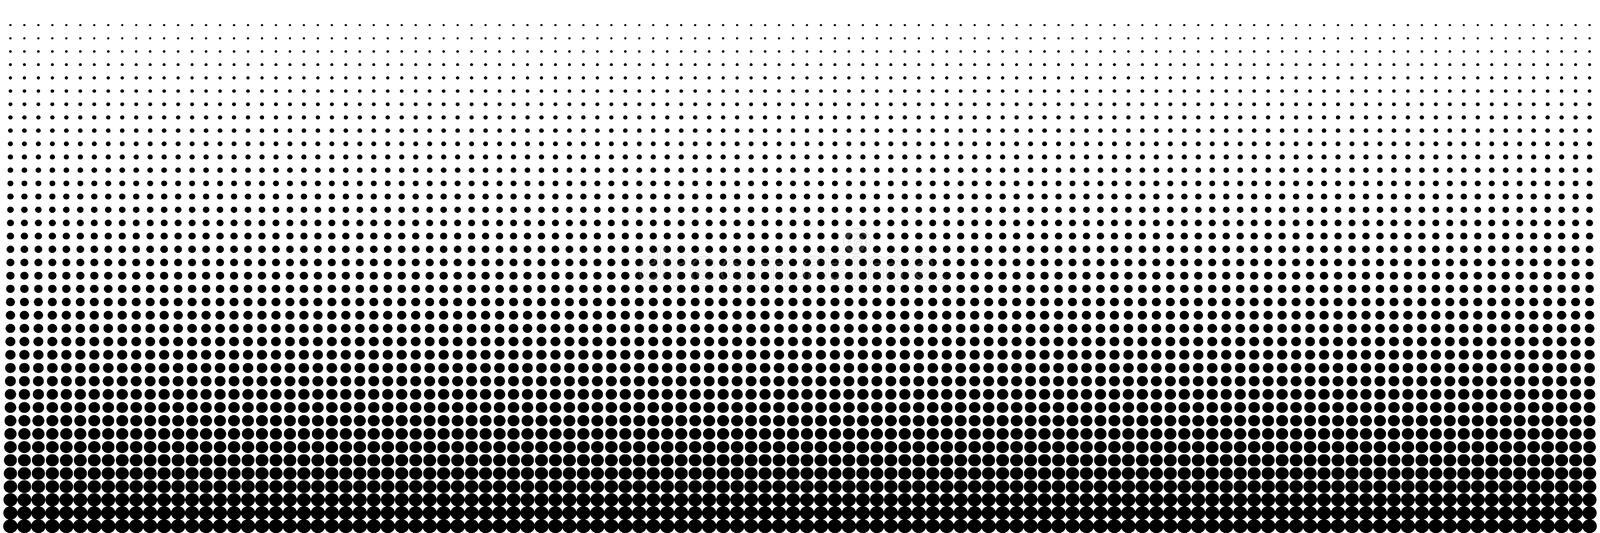 Dotted Background Vector Illustration, White And Black